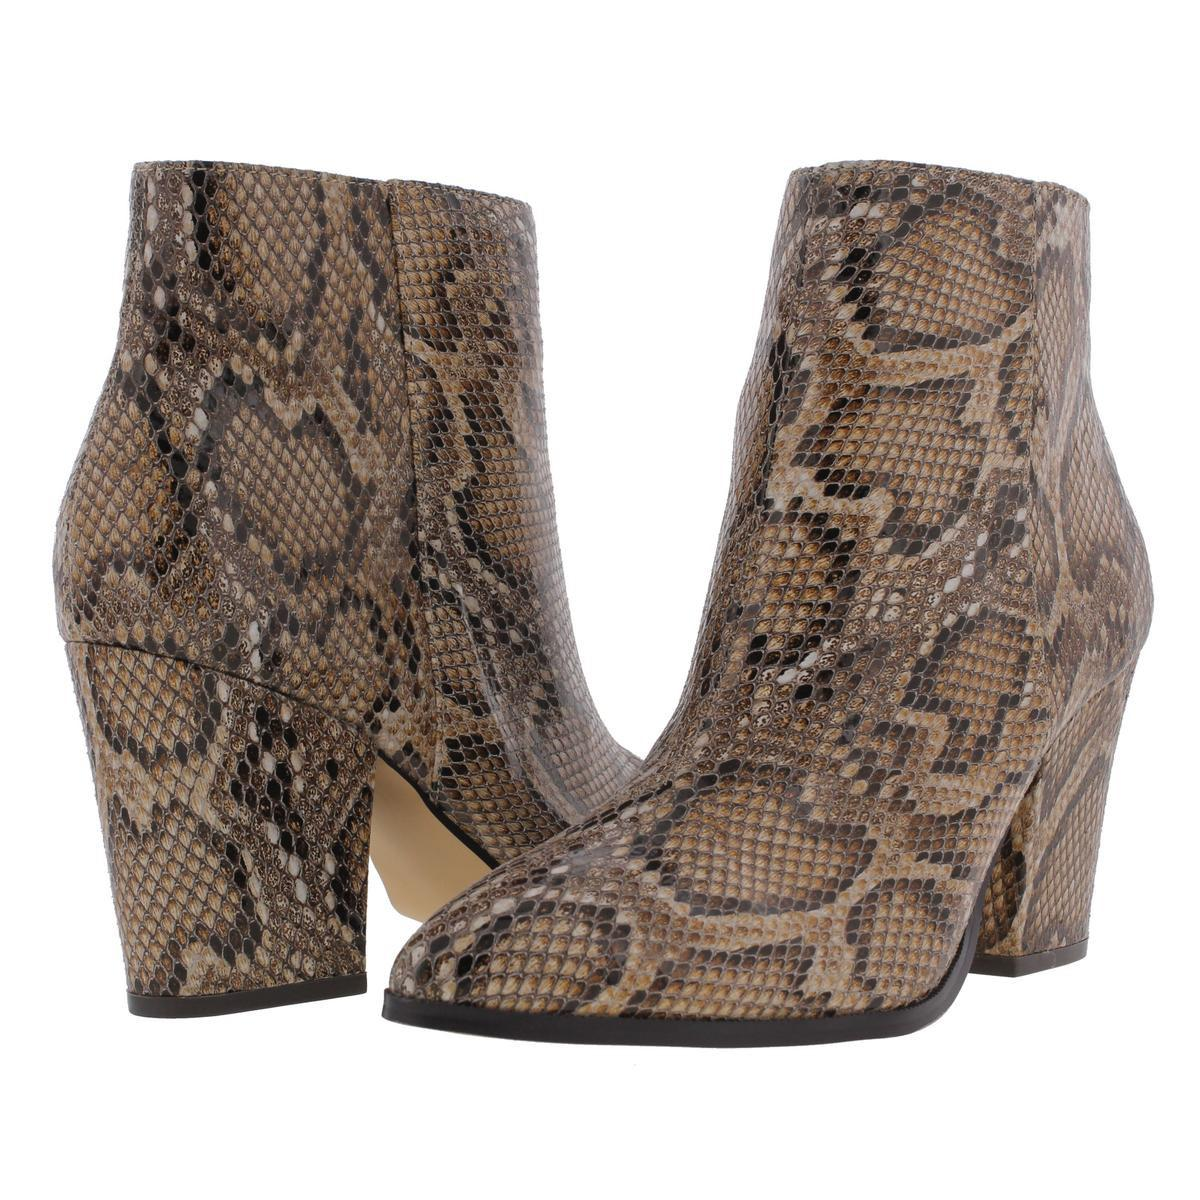 eb86e0b2f9f Lyst - Steve Madden Marissa Leather Snake Skin Ankle Boots in Brown